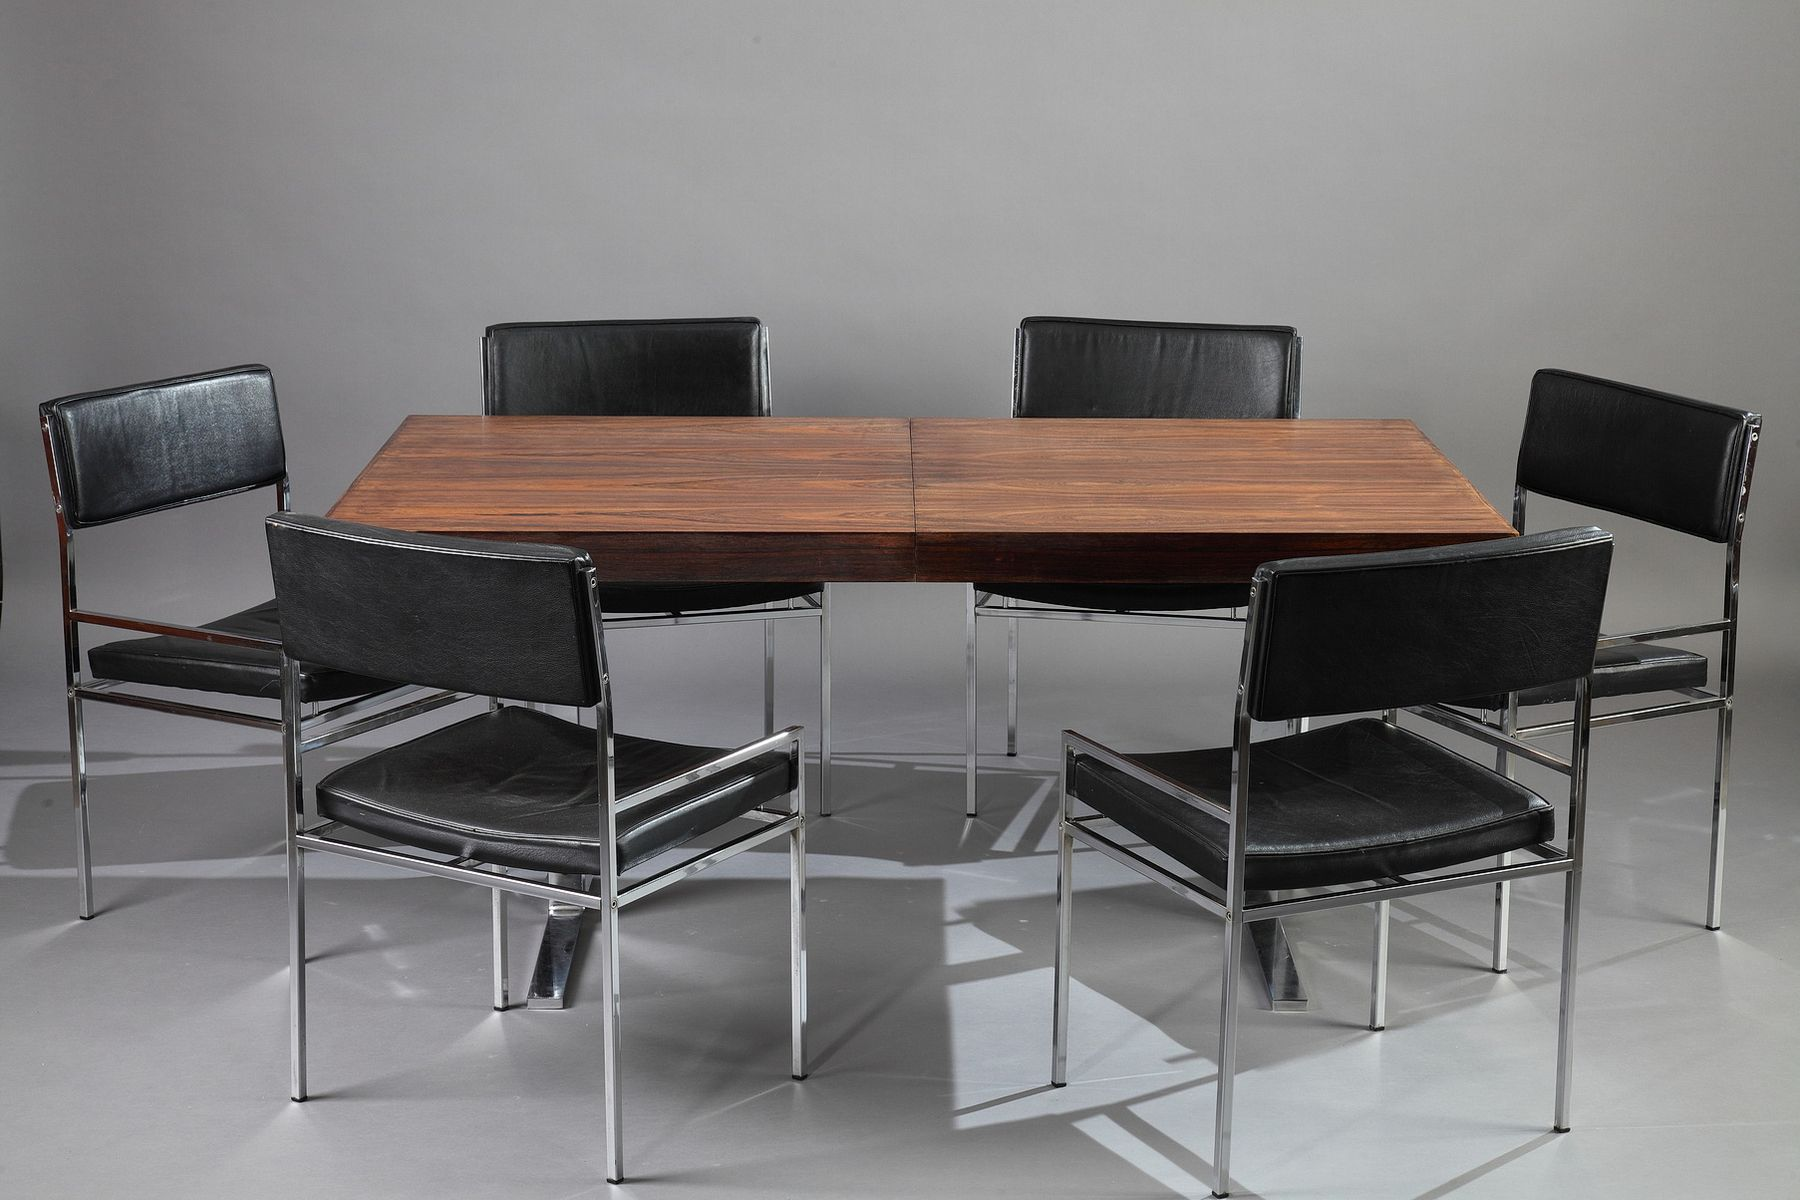 Dining Set by Poul Norreklit 1960s for sale at Pamono